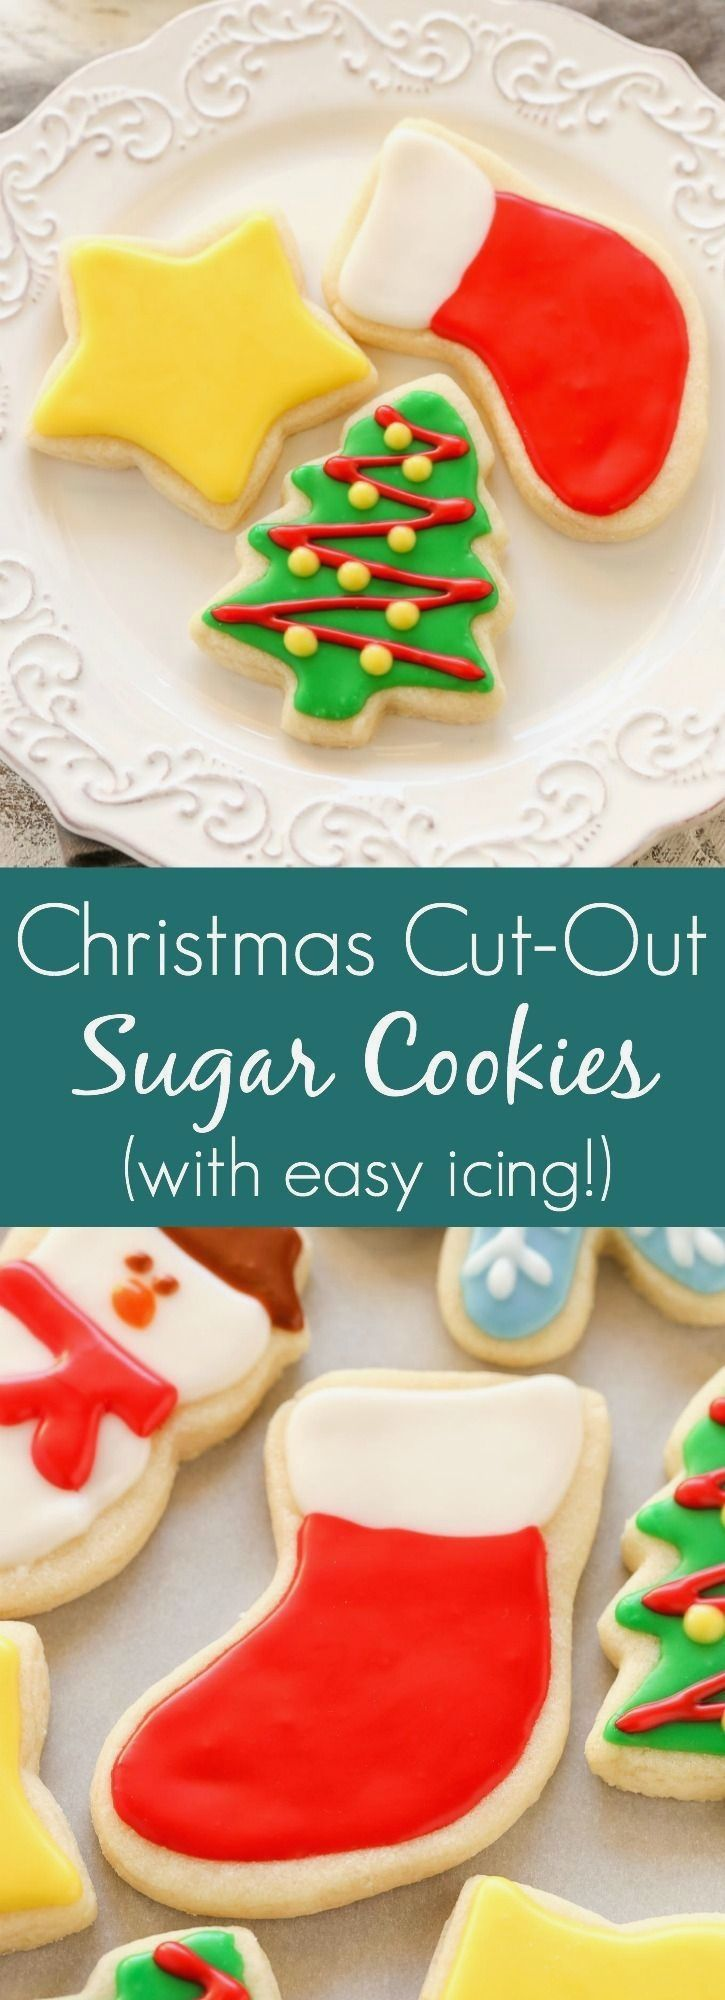 8 Christmas Cut-Out Sugar Cookies